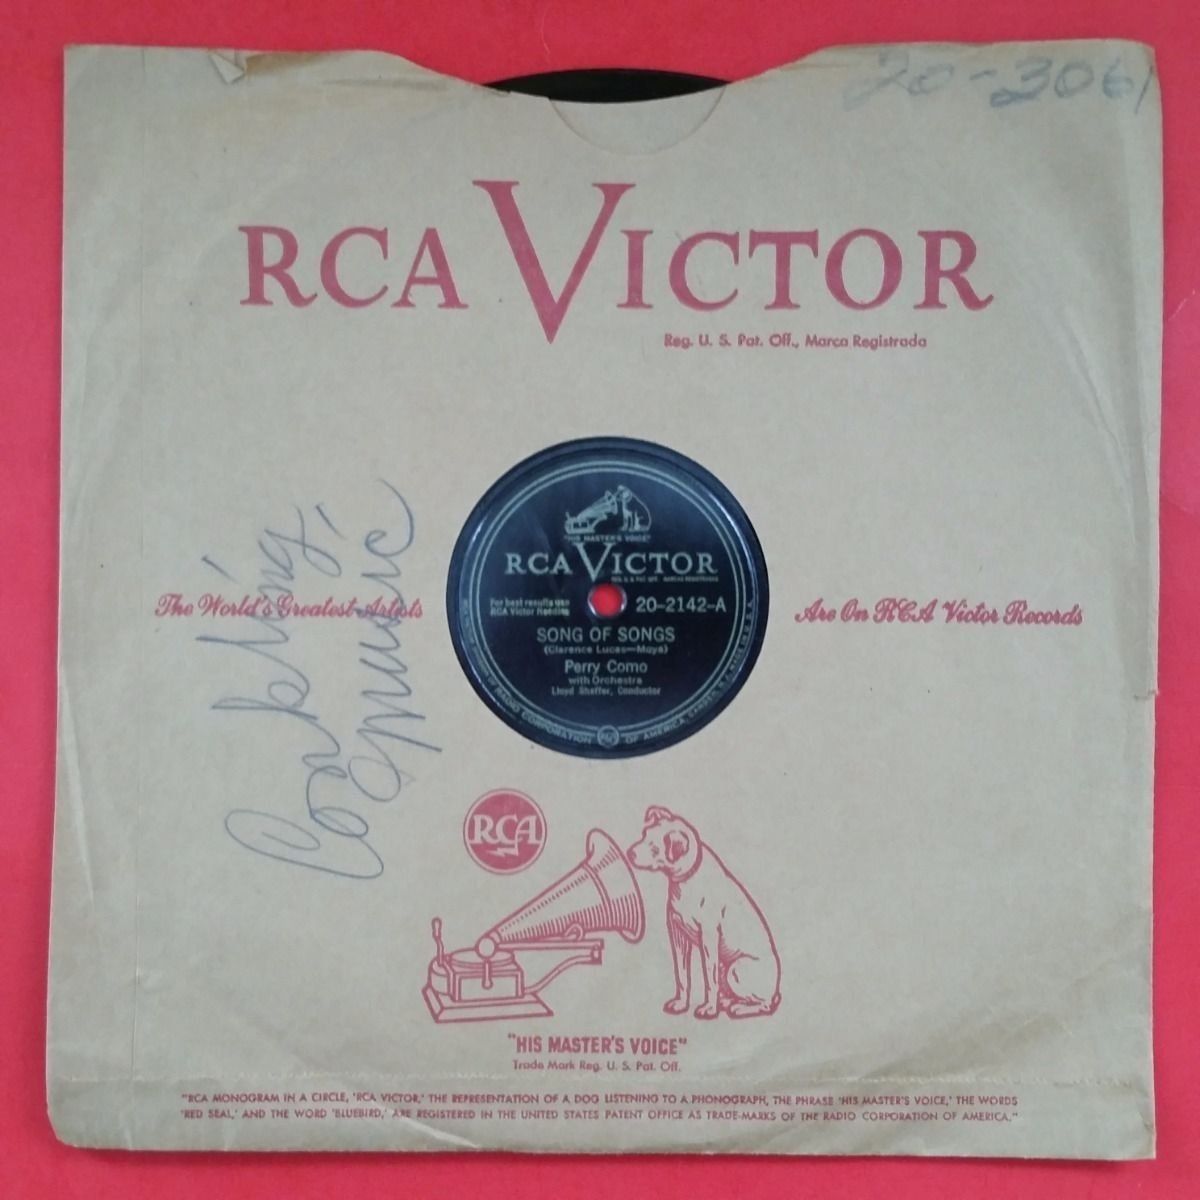 PERRY COMO Song Of Songs b/w Easter Parade 78 rpm Vinyl VG RCA Victor 20 2142